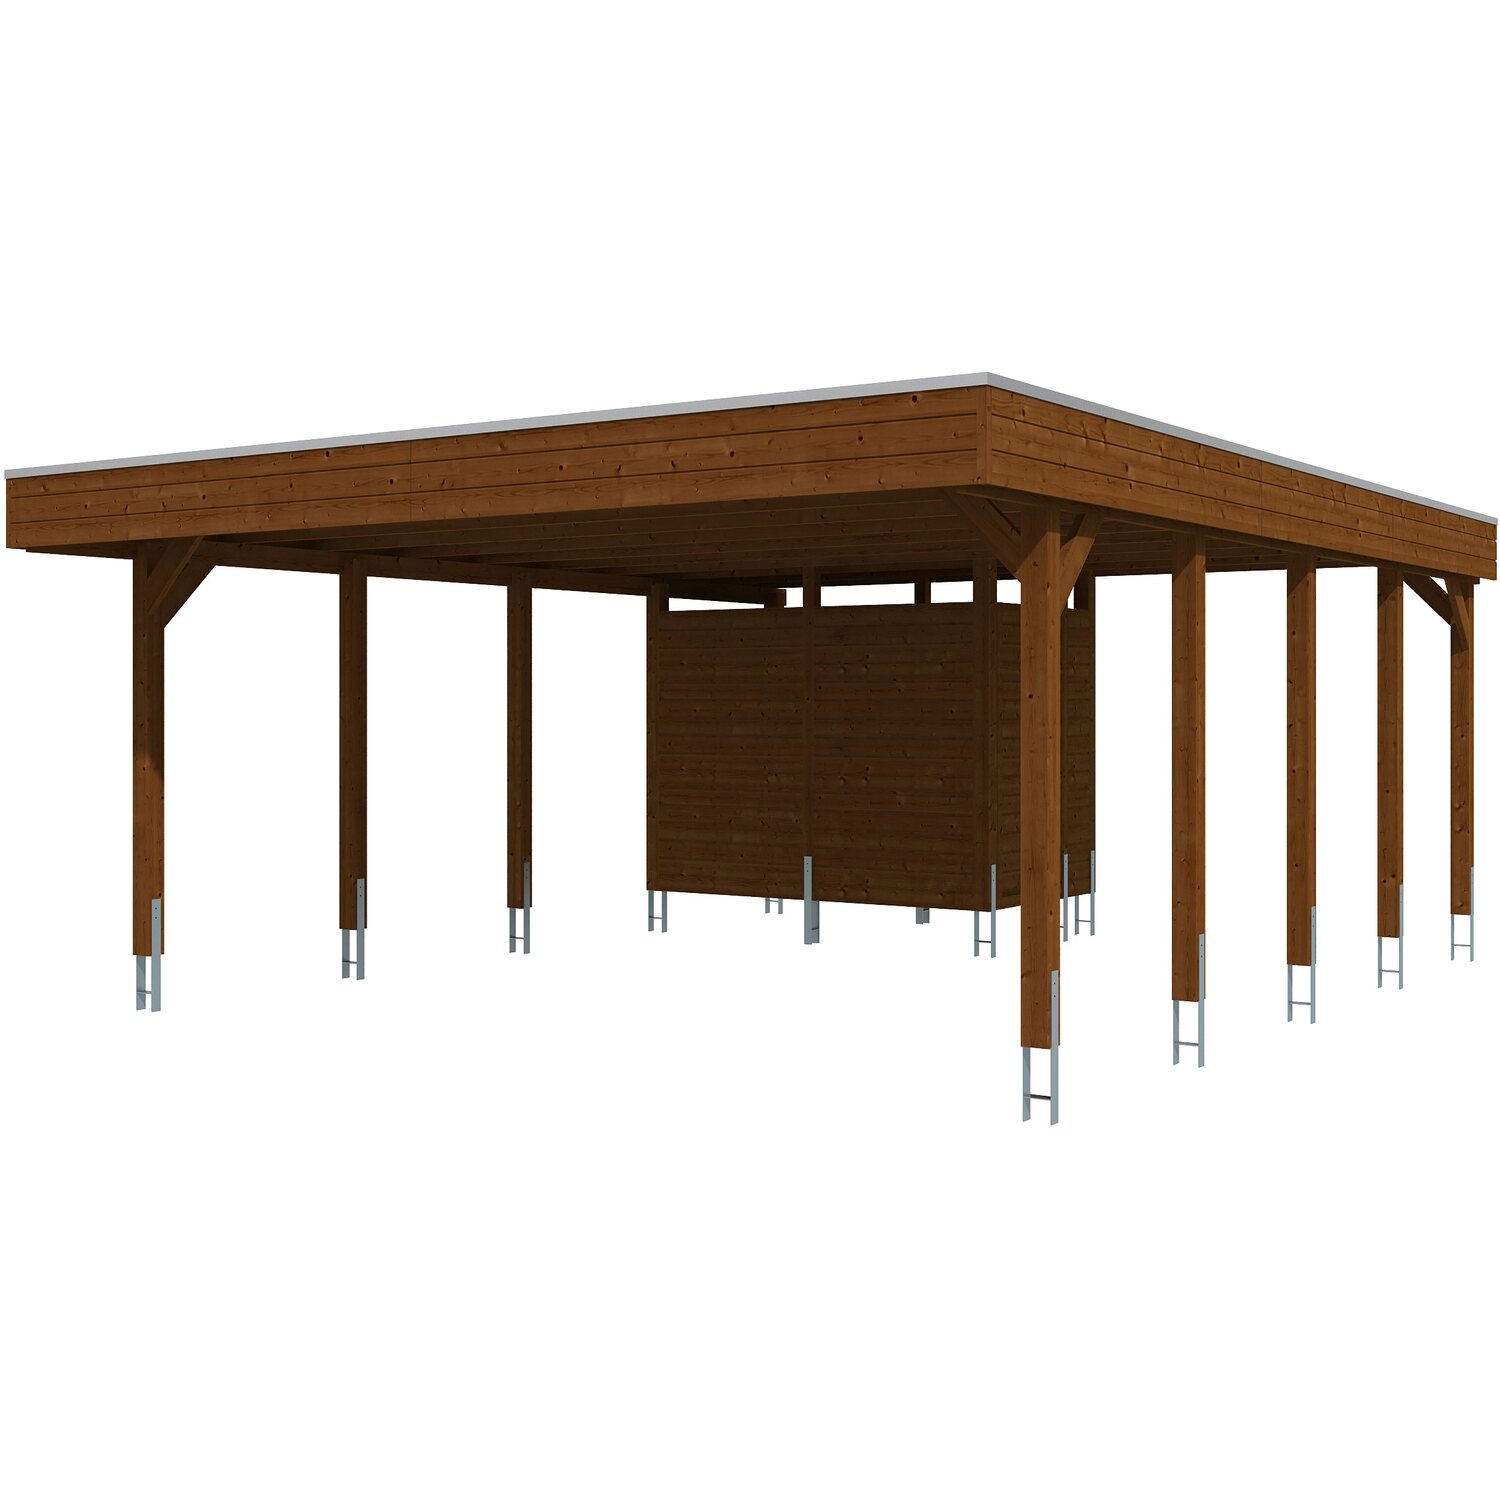 Obi Carport Awesome Obi Carport Bausatz Leimbinder With